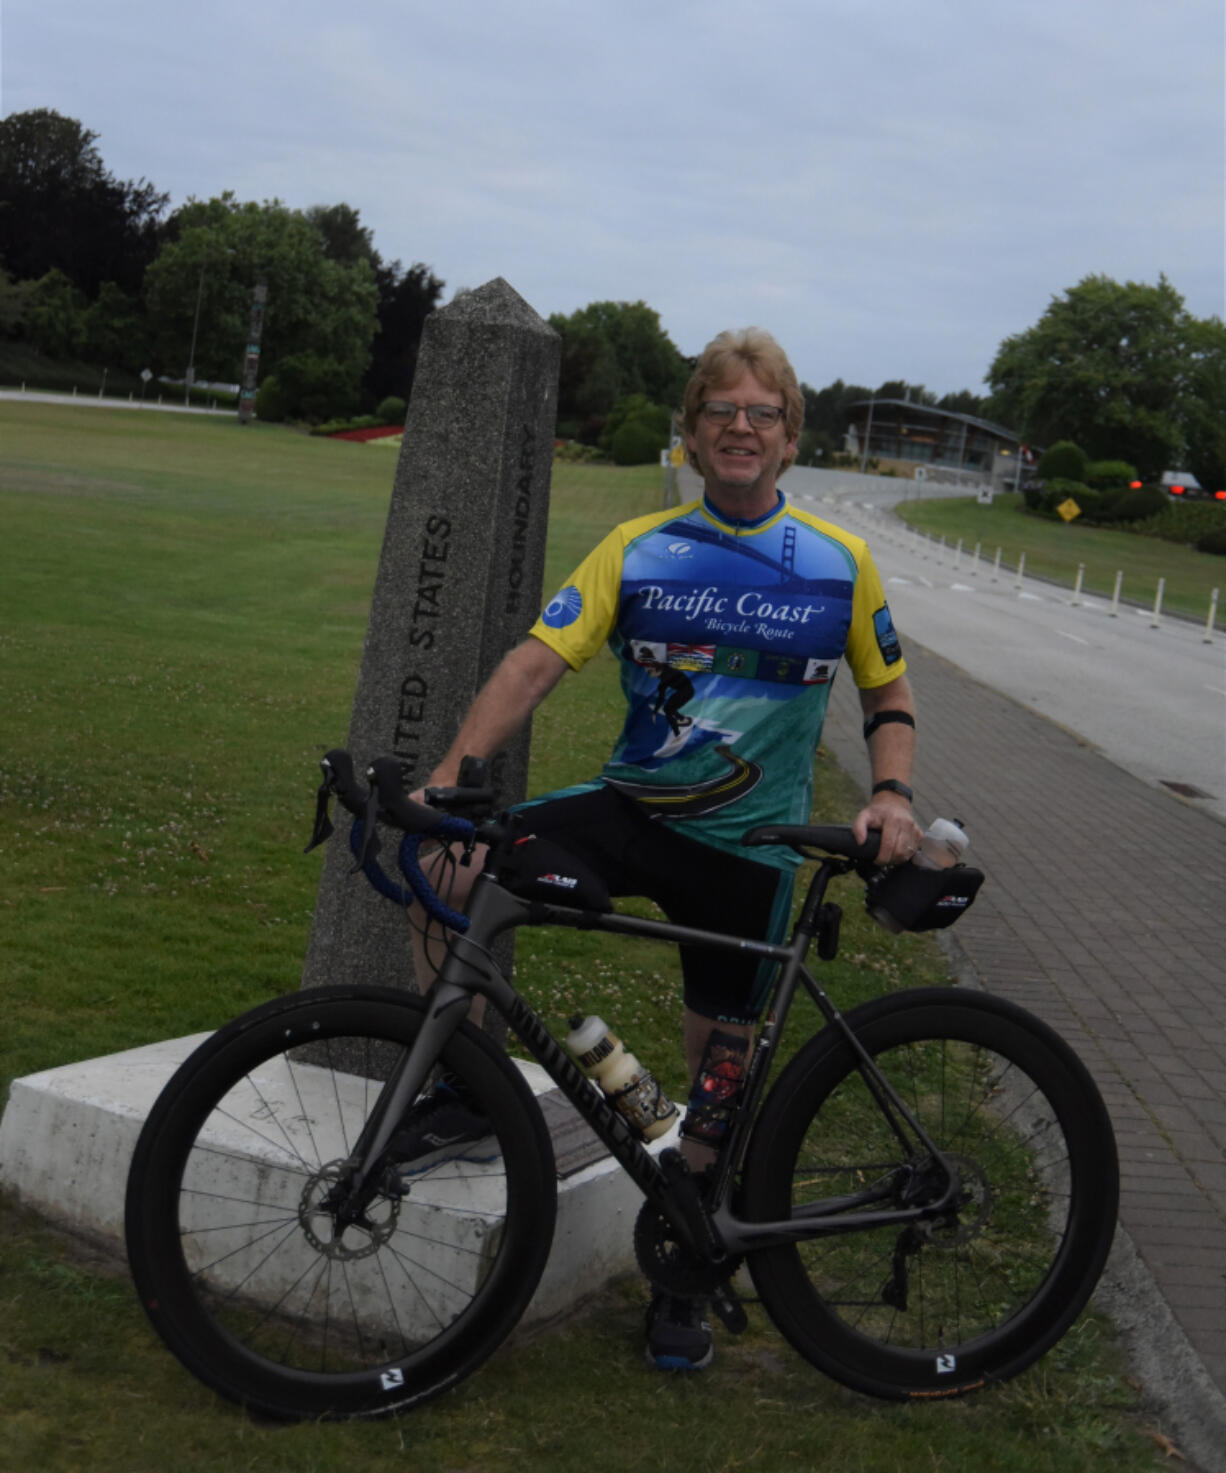 CLARK COUNTY: Vancouver resident and Rotarian Terry Toland set off on a 1,300 bike ride called the Border to Bay Benefit Ride to raise awareness and money for Martha's Pantry.